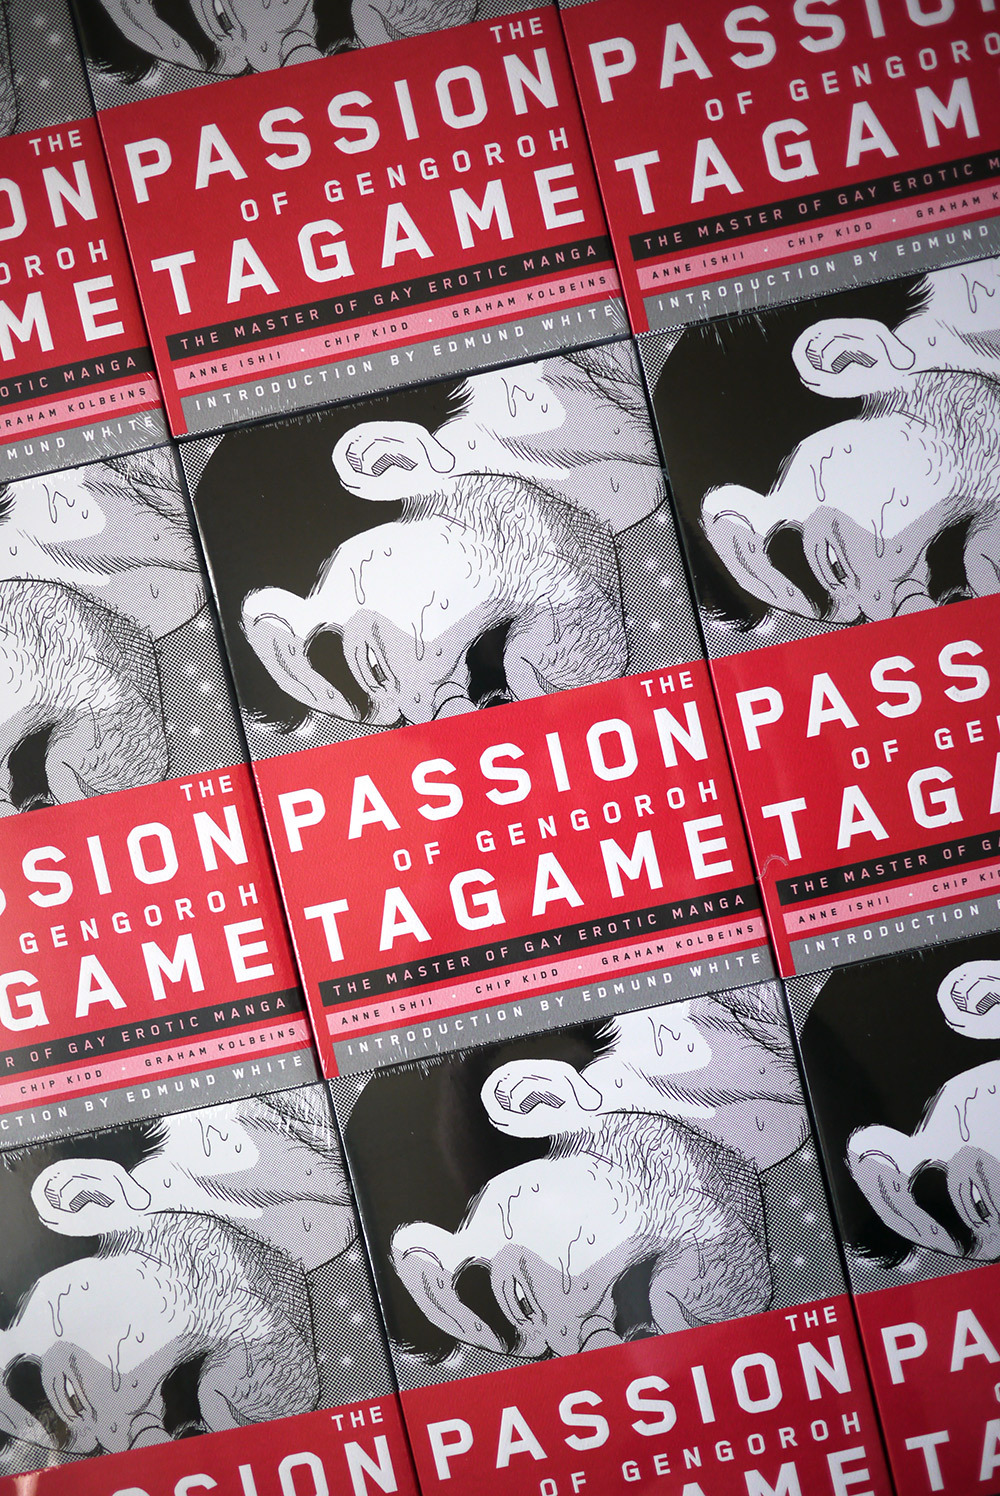 gaymanga:  Win a free copy of The Passion of Gengoroh Tagame: The Master of Gay Erotic Manga! While pre-orders have been shipping out for weeks, today is the official release date of The Passion of Gengoroh Tagame. To celebrate, we're giving away a copy of the book on Gay Manga! All you have to do to enter the giveaway is reblog this post on your Tumblr. You must be 18 or older and reside within the United States to qualify. A winner will be randomly selected from the pool of entrants on Friday, May 3rd at 12:00pm Eastern Standard Time. Good luck!!  yes, please